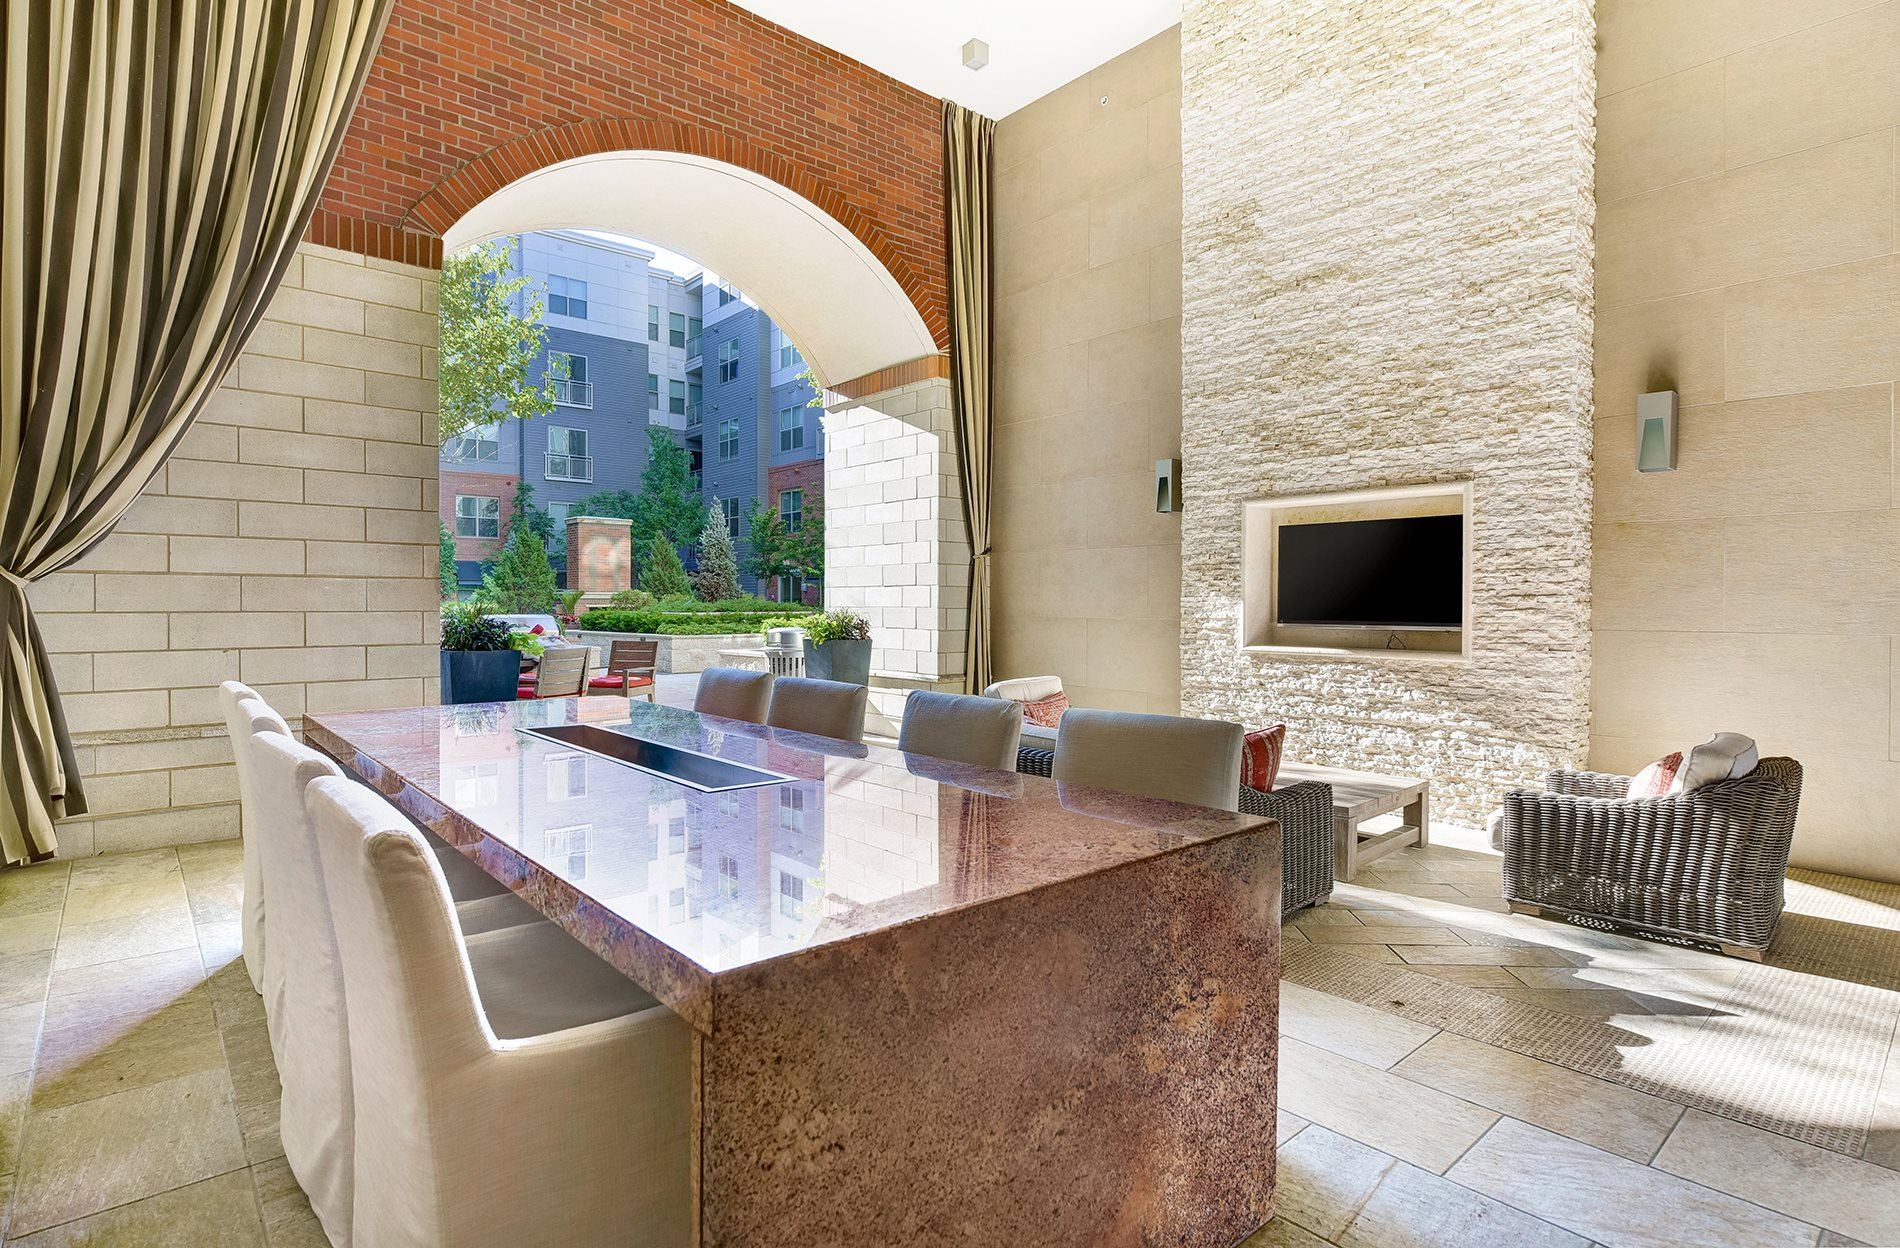 Furnished 1 Bedroom Apartment Cambridge Ma Vox On Two Luxury Apartments In Cambridge Ma Home